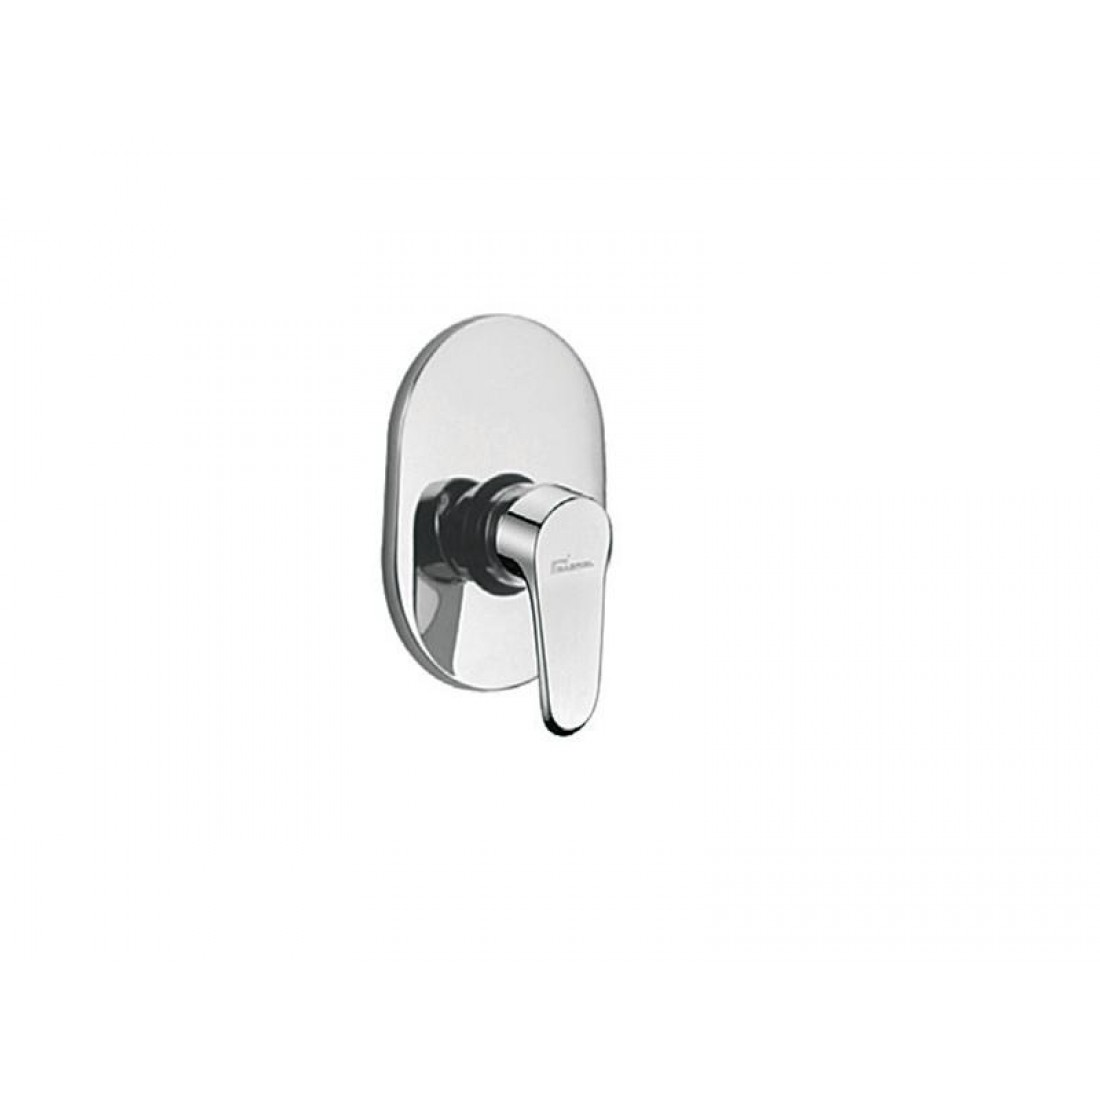 Karag Praxis ZOE 7935A 1 Shower Faucet Chrome Zoe